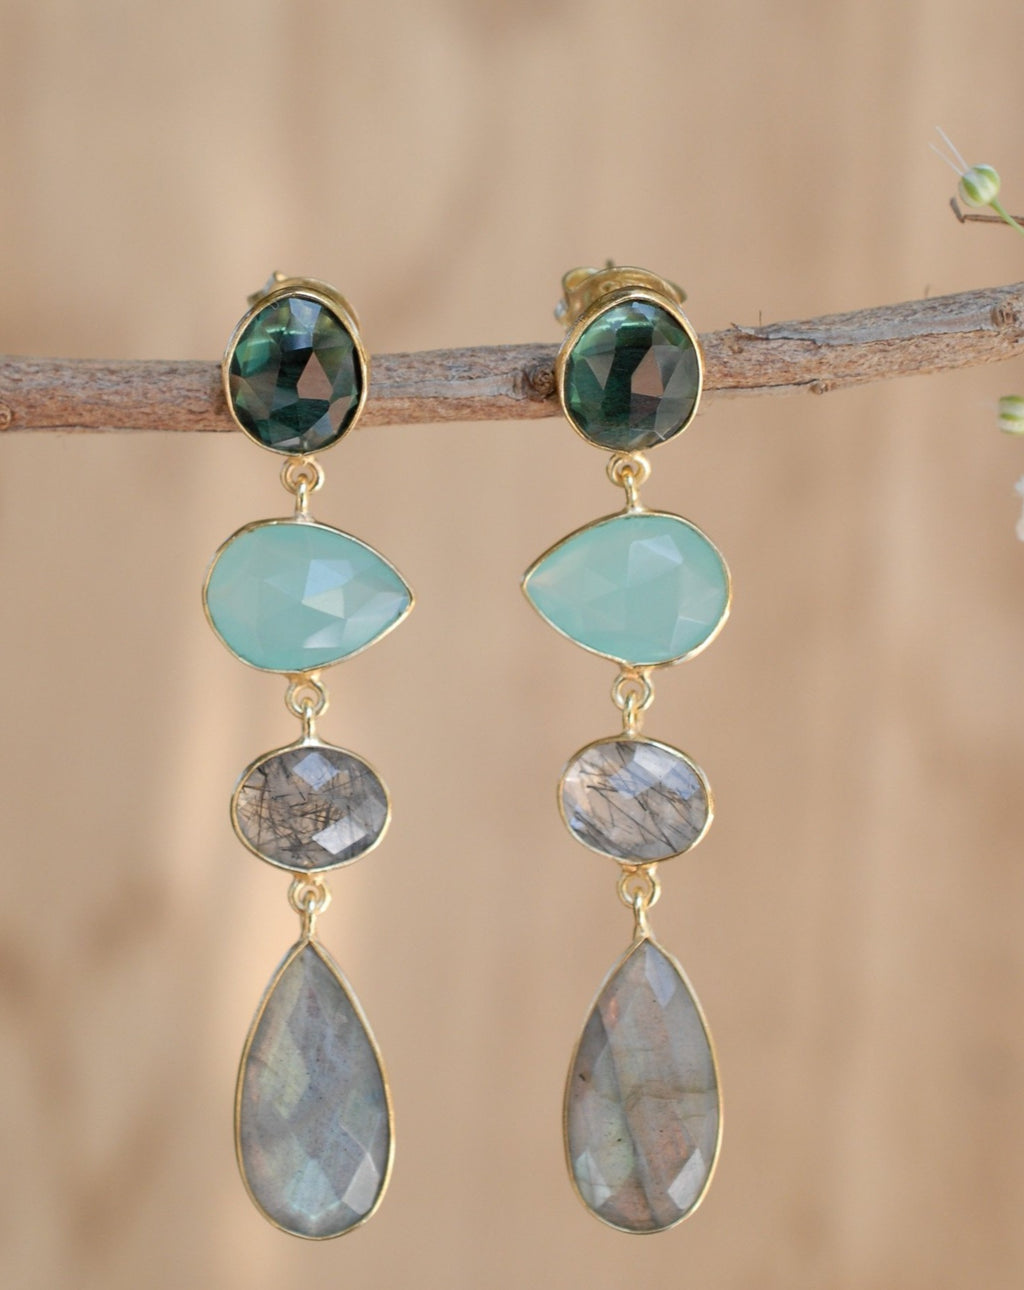 Bela Liz Earrings * Green Tourmaline Hydro, Aqua Chalcedony, Black Rutilated Quartz,& Labradorite * Gold Plated 18k * BJE087